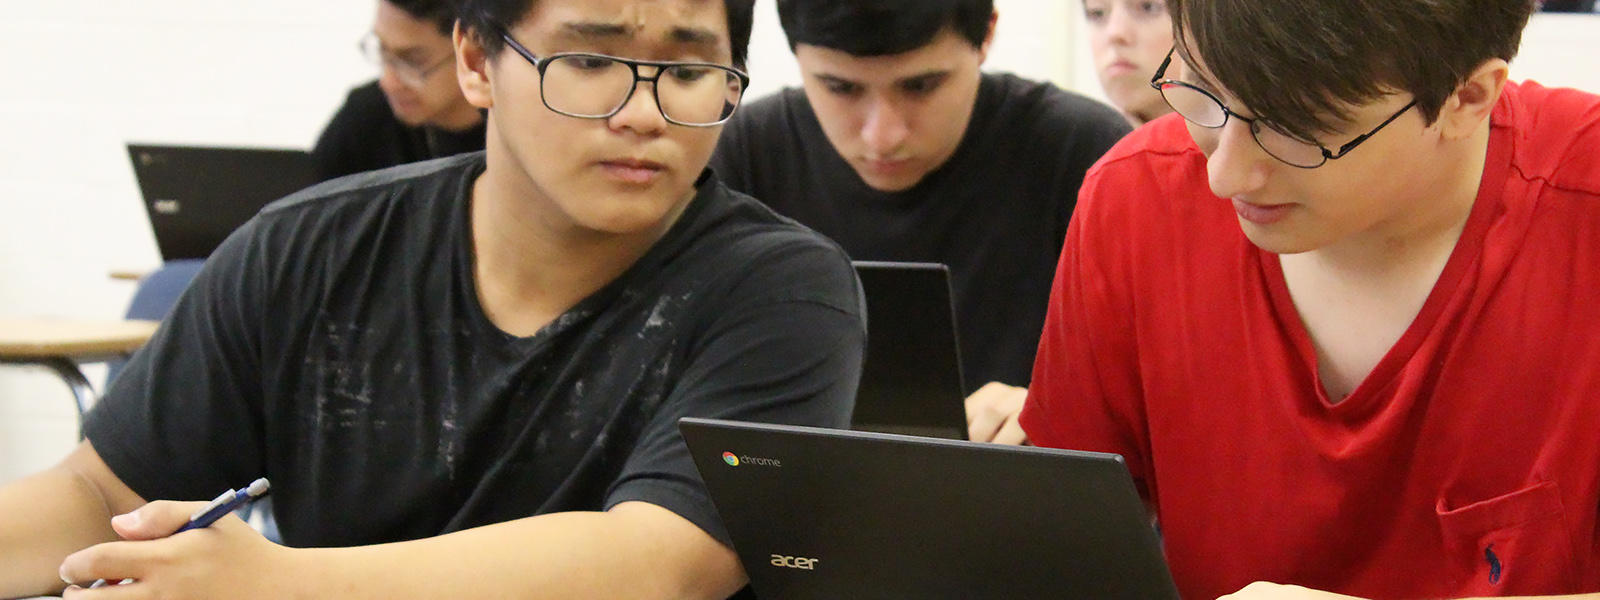 EPHS students use their laptops in class.